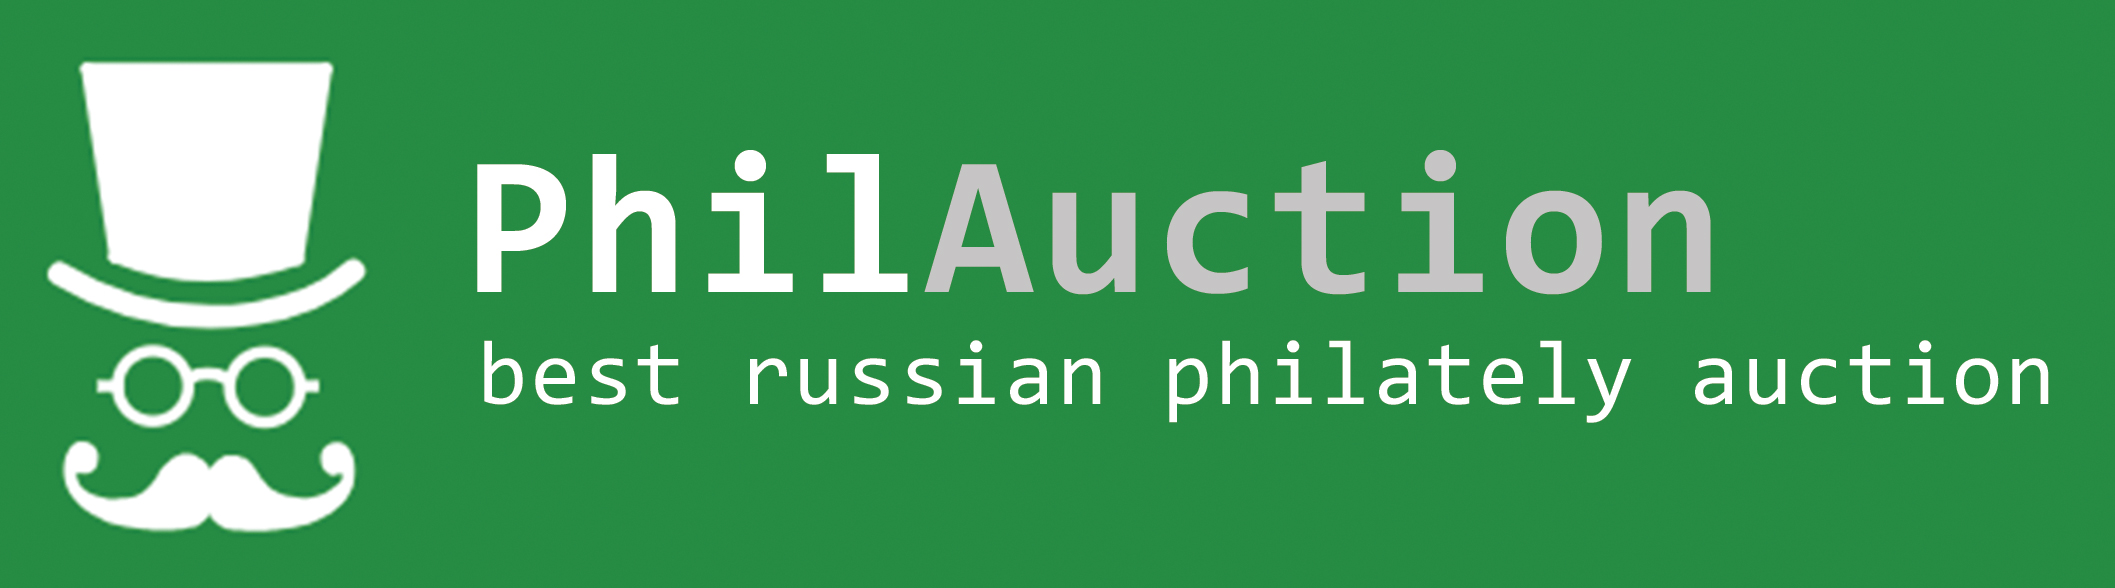 philauction.jpg